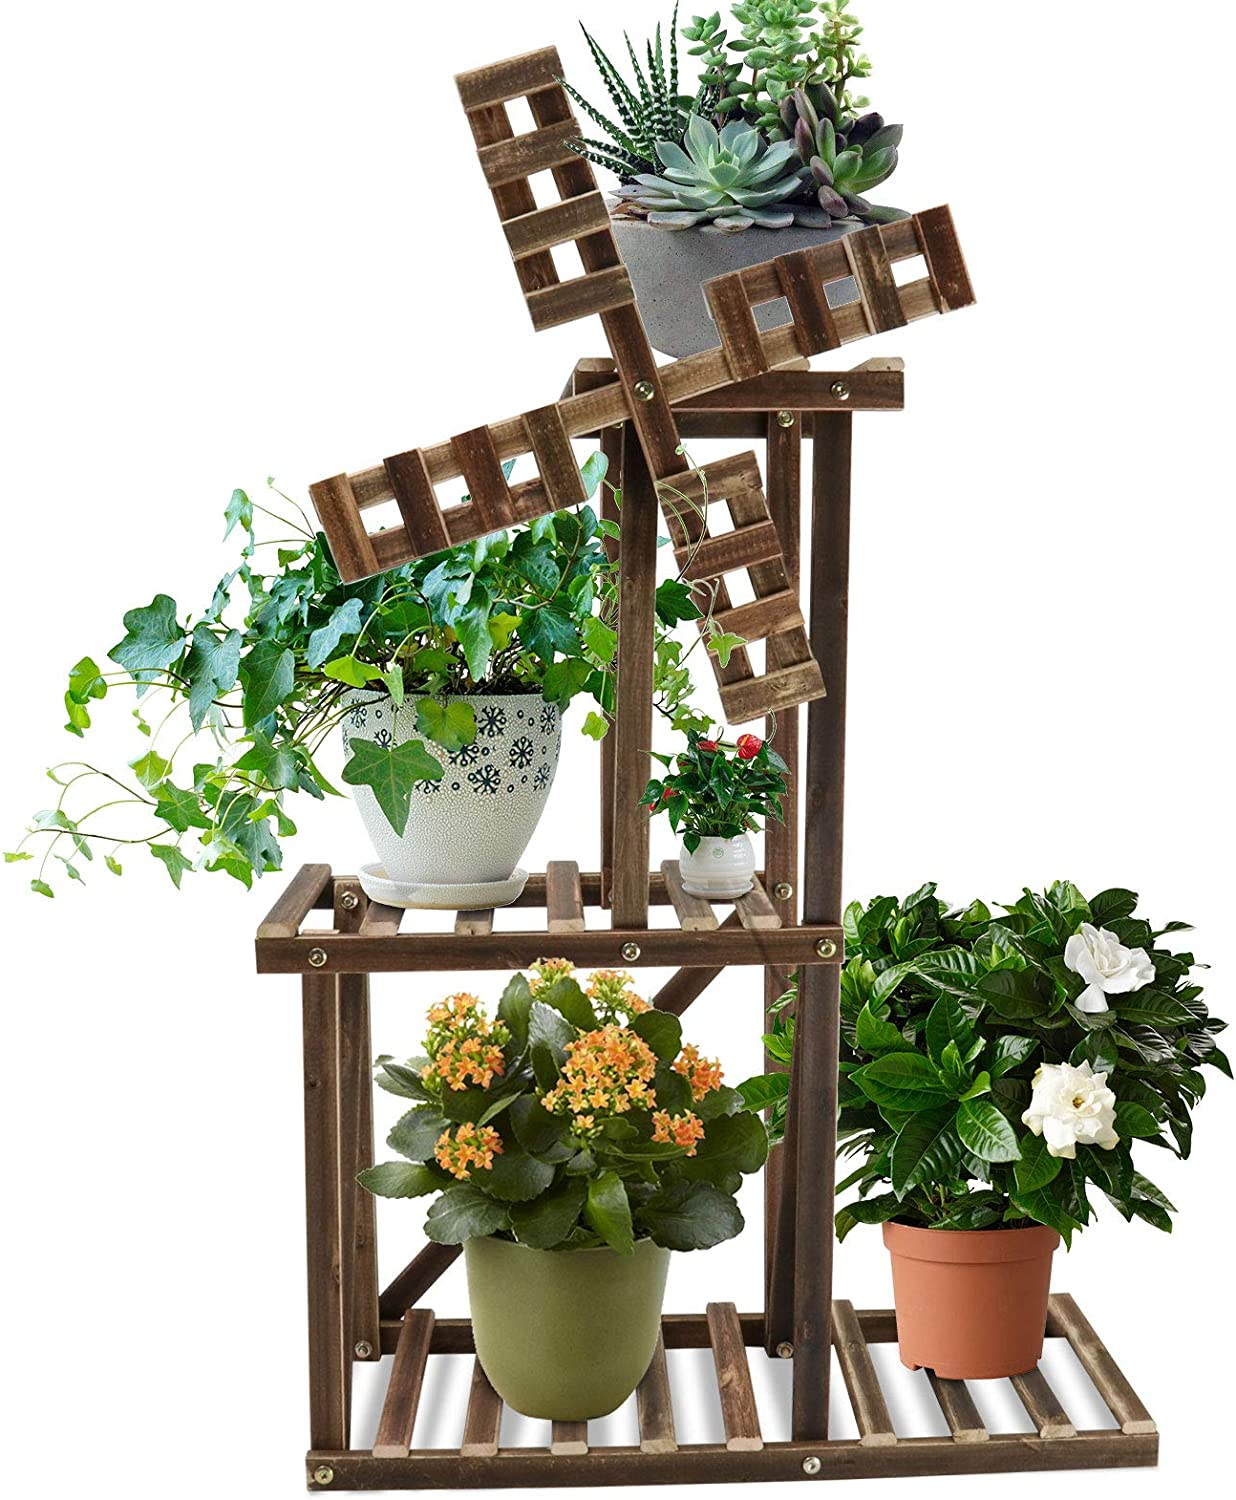 Wood Plant Stand,Wooden Plant Display Multi Tier Windmill Flower Shelves Stands for Patio Garden Balcony Yard - Suitable for Outdoor & Indoor Use